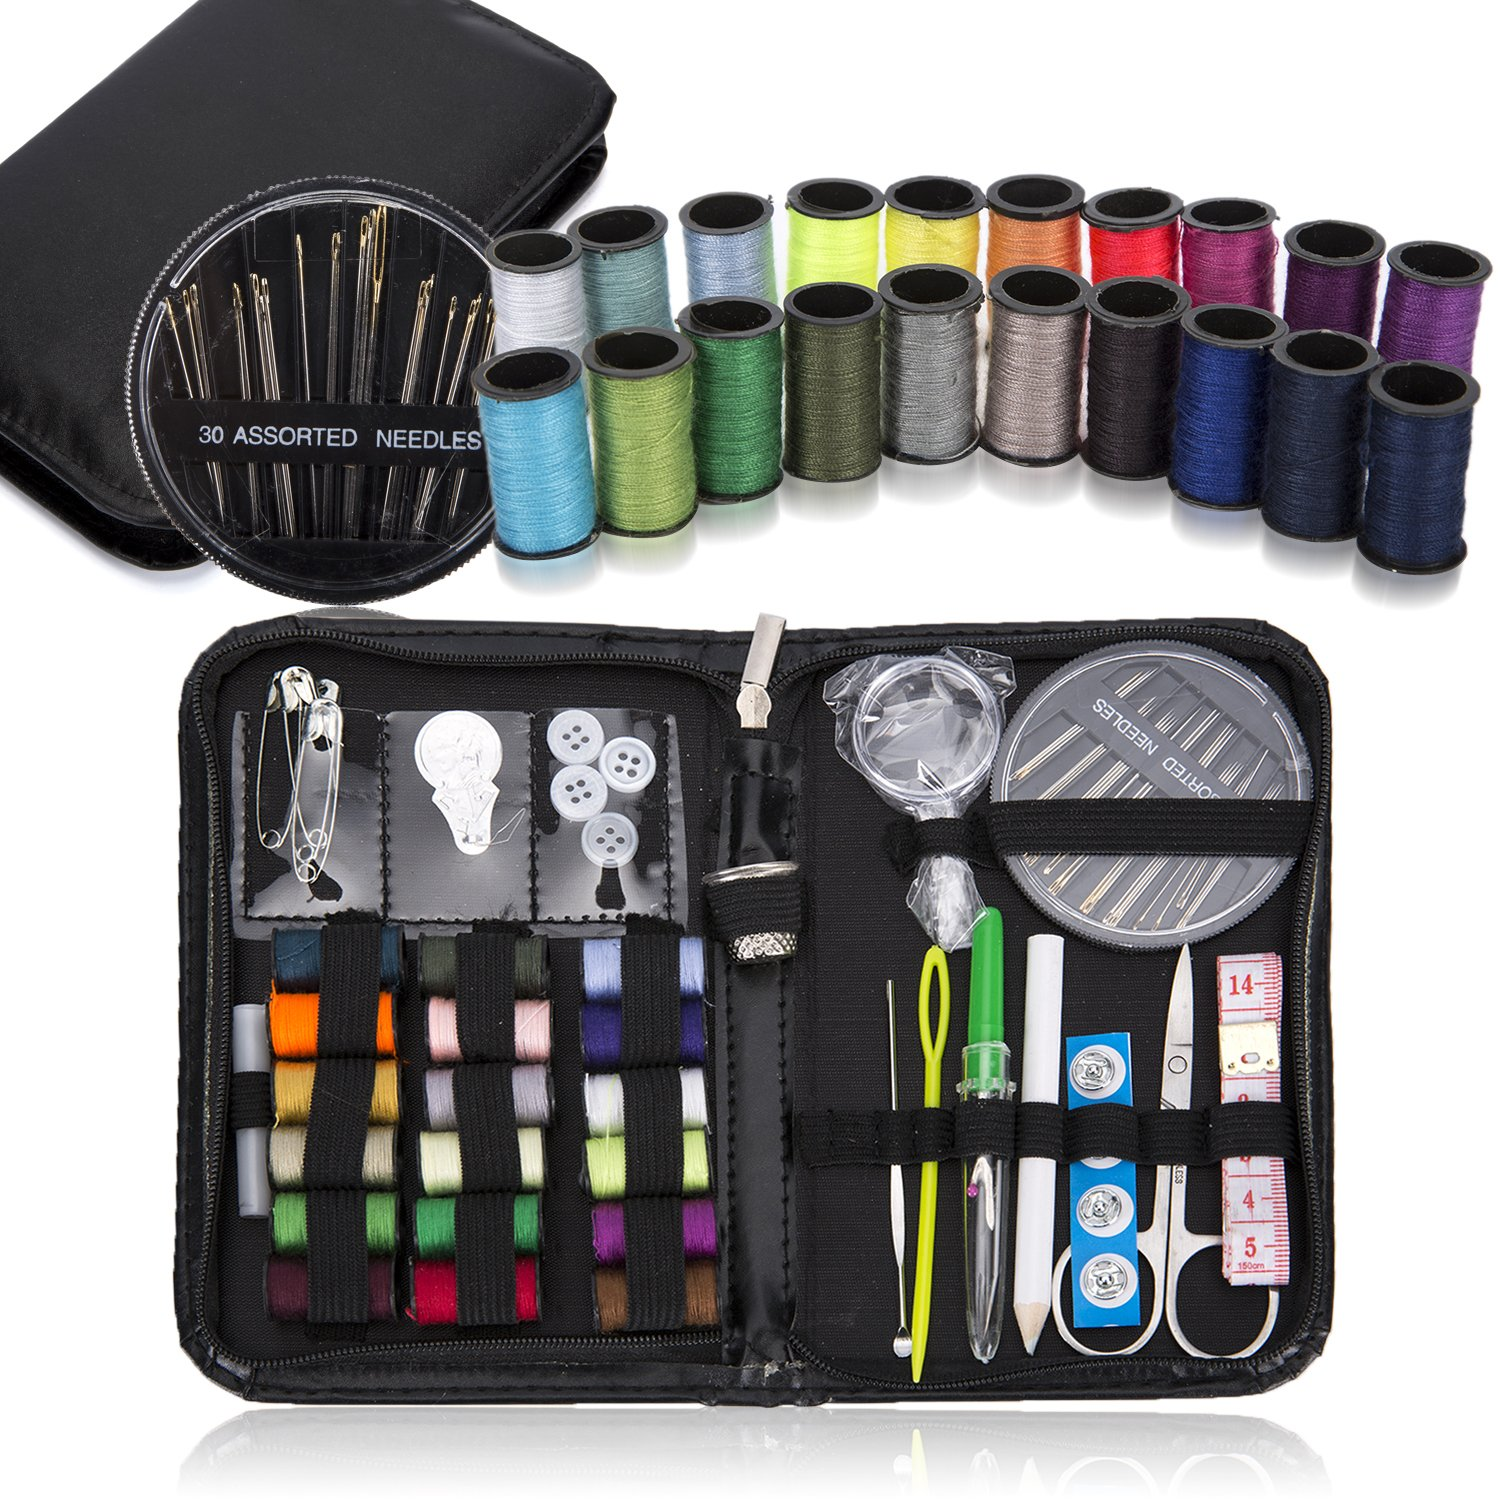 TARTINY Mini Travel Sewing Kit for Home, Travel & Emergencies – Filled with Quality Notions Scissor & Thread – Great Gift 4336936275